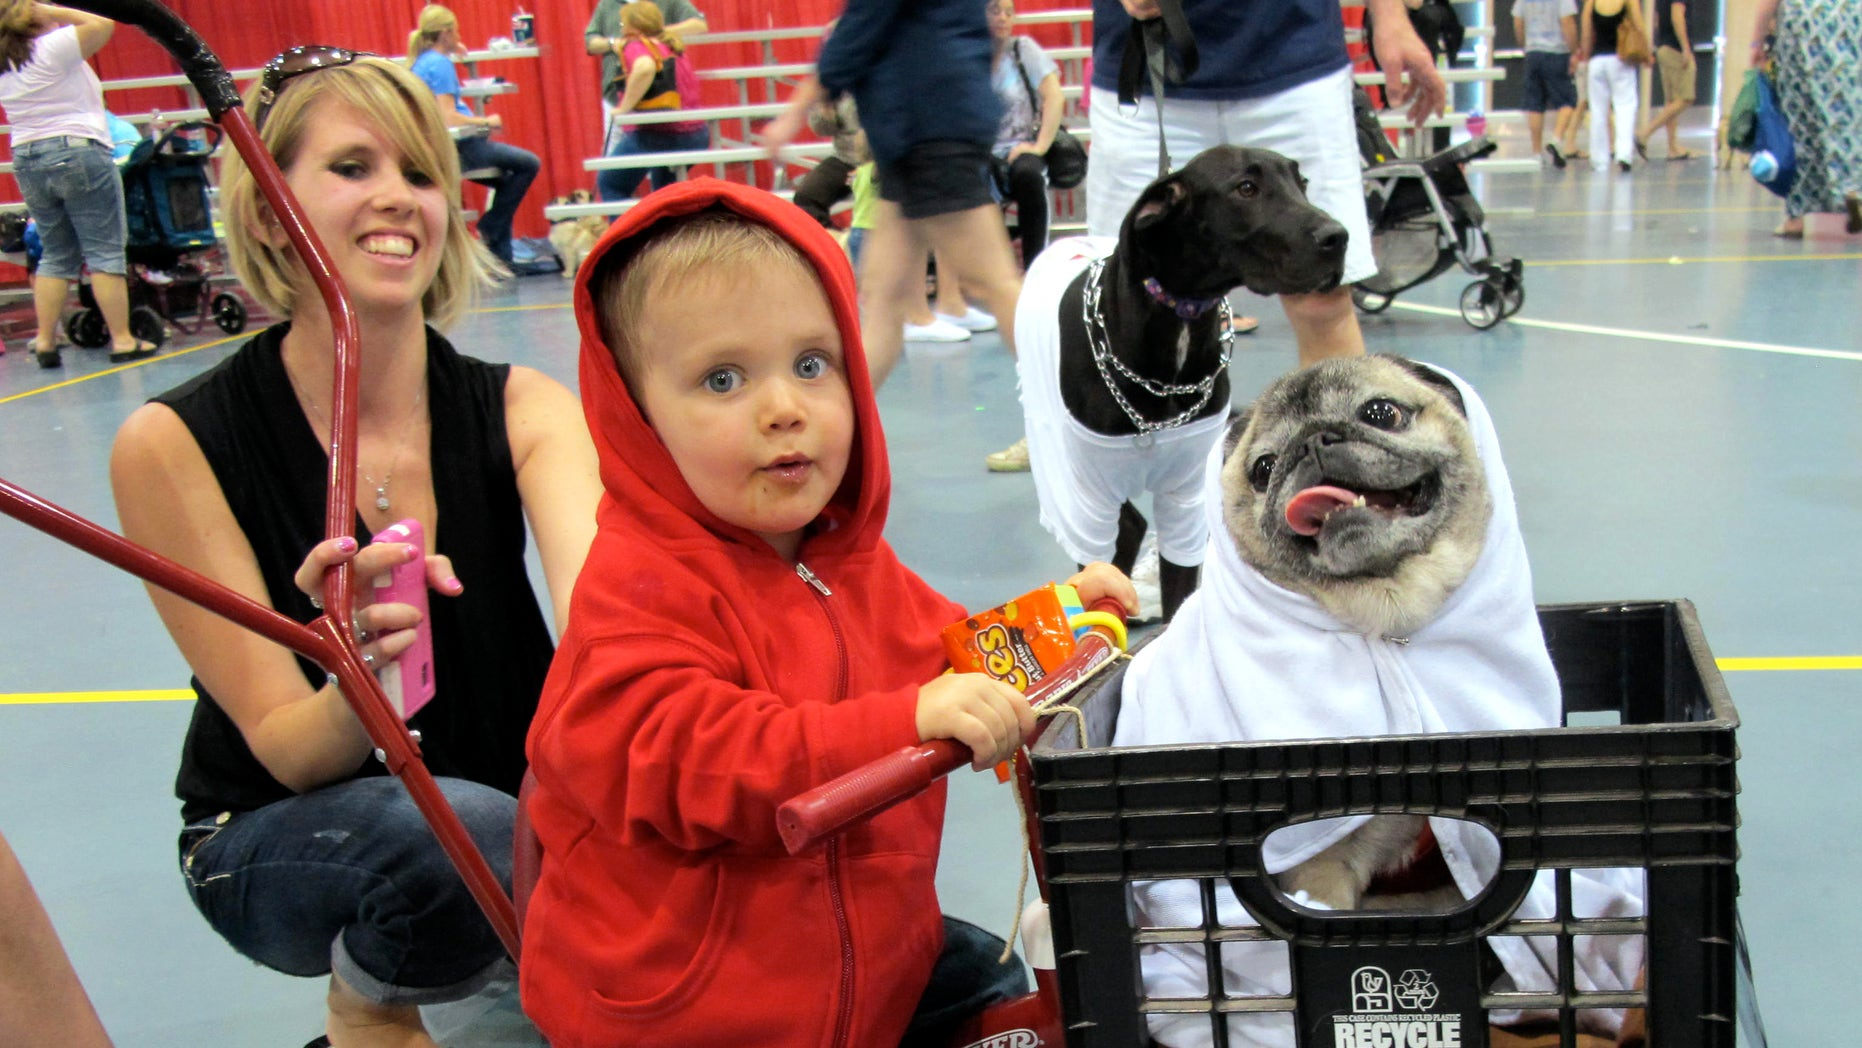 In this May 19, 2013, photo Lucas Purdy, 1, and Peke the pug won first place in one of the costume contests at Milwaukee Pug Fest in Franklin, Wis.  The annual event, that helps pay for medical and dental bills for rescued pugs, attracted more than 1,700 pugs and other smushy-faced dogs along with 2,900 humans from the U.S. and Canada. (AP Photo/Carrie Antlfinger)